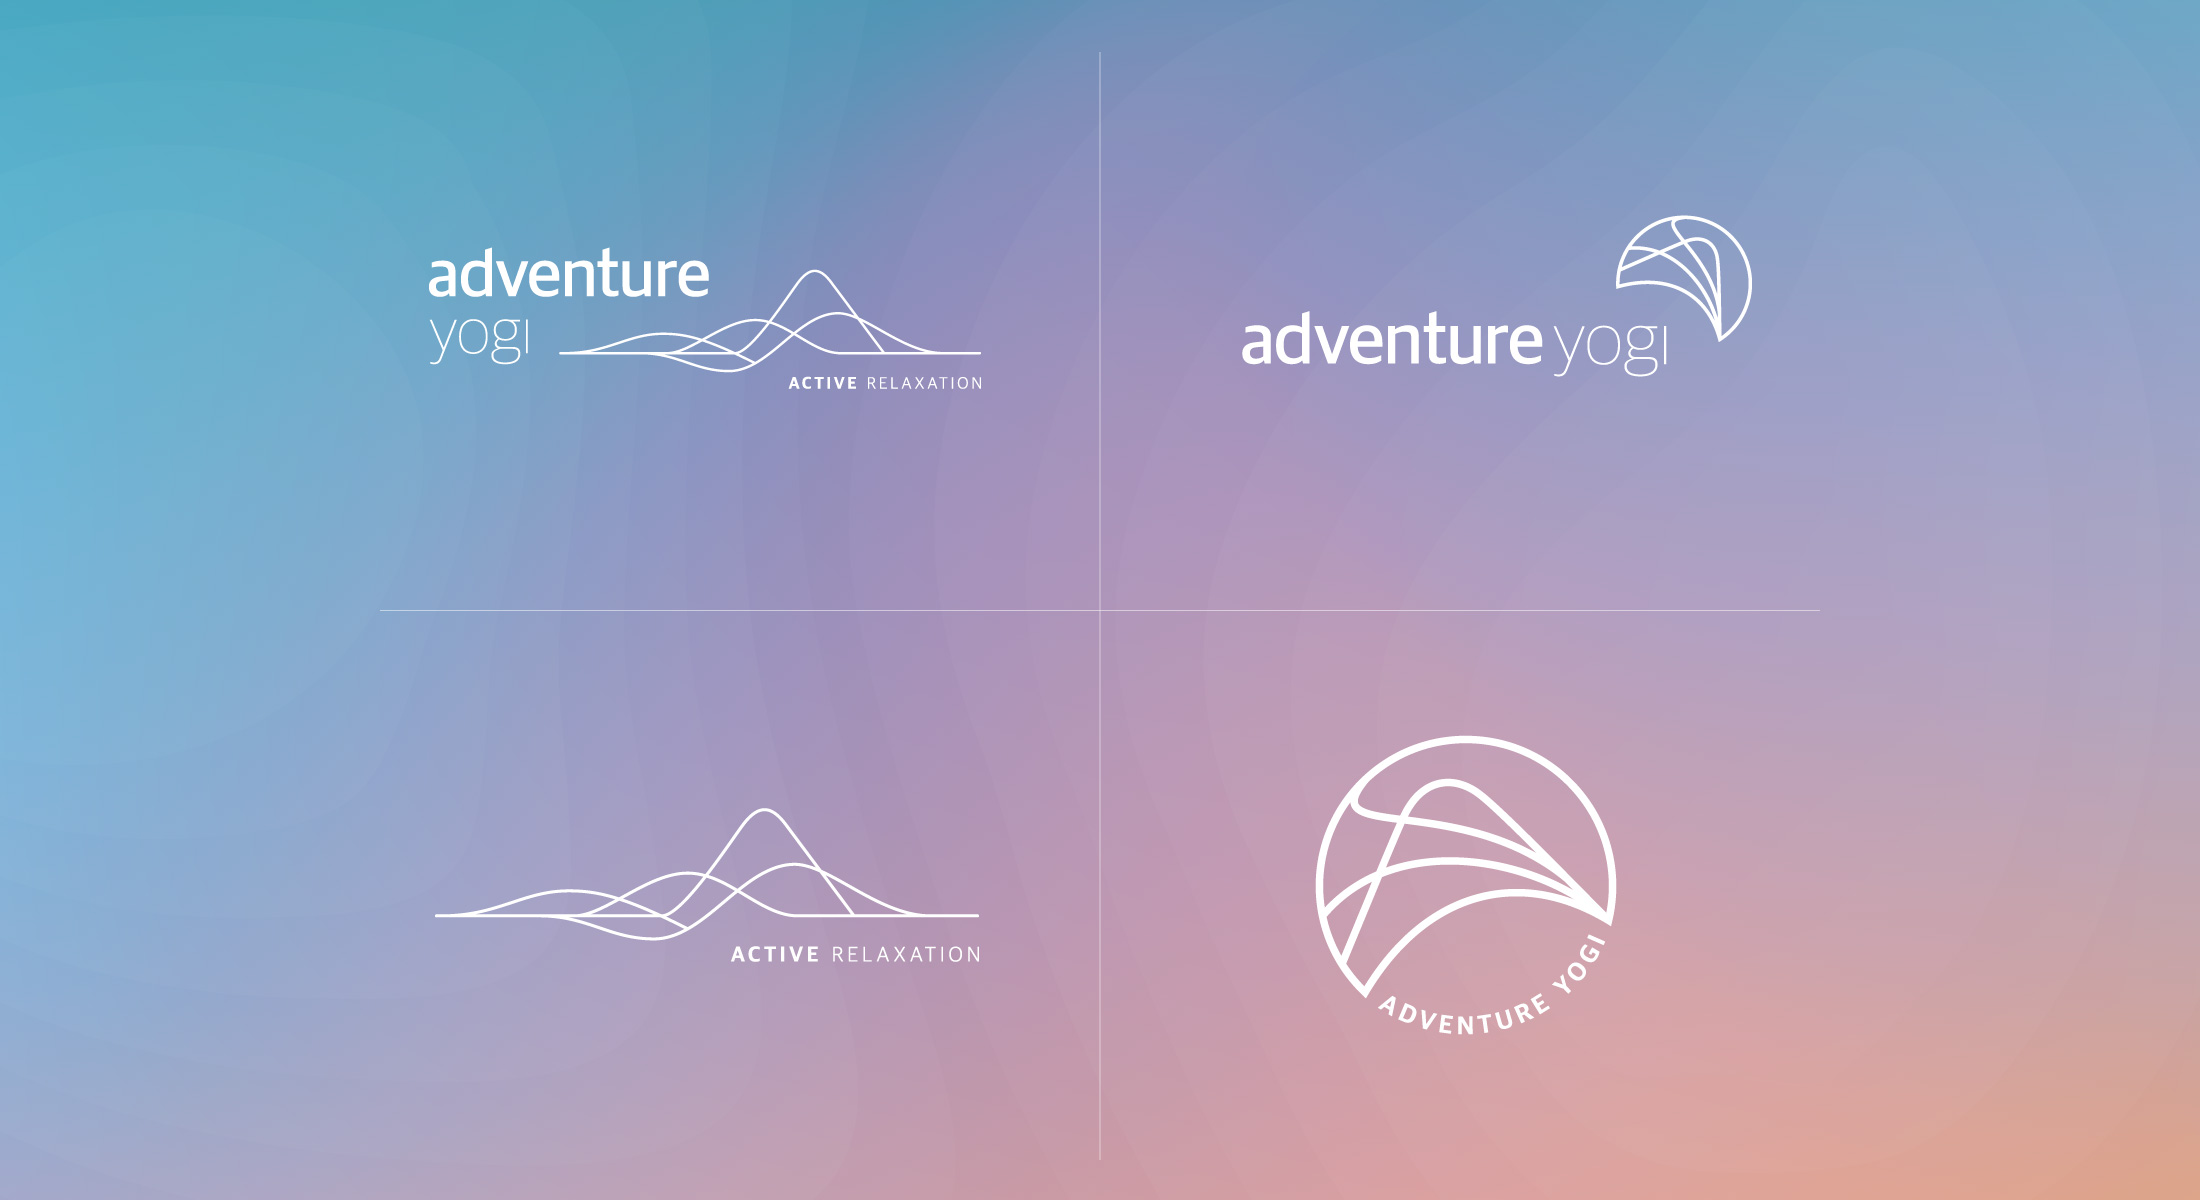 Four Adventure Yogi Logos on a pink, blue and orange background to resemble a sunset